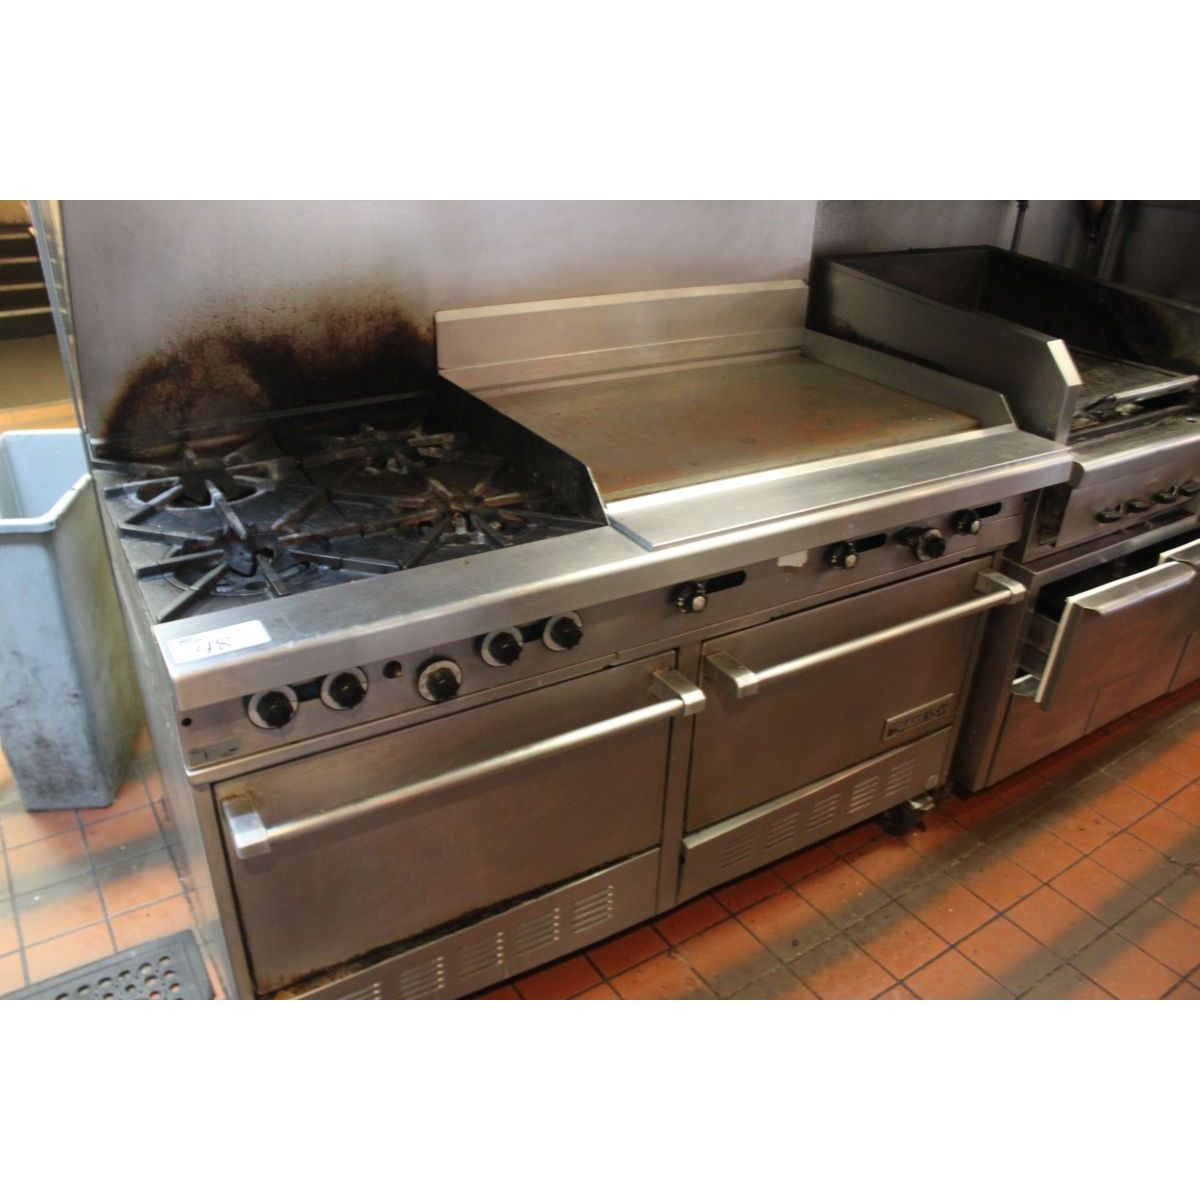 Gas Stove With Griddle ~ Garland burner gas stove with griddle and